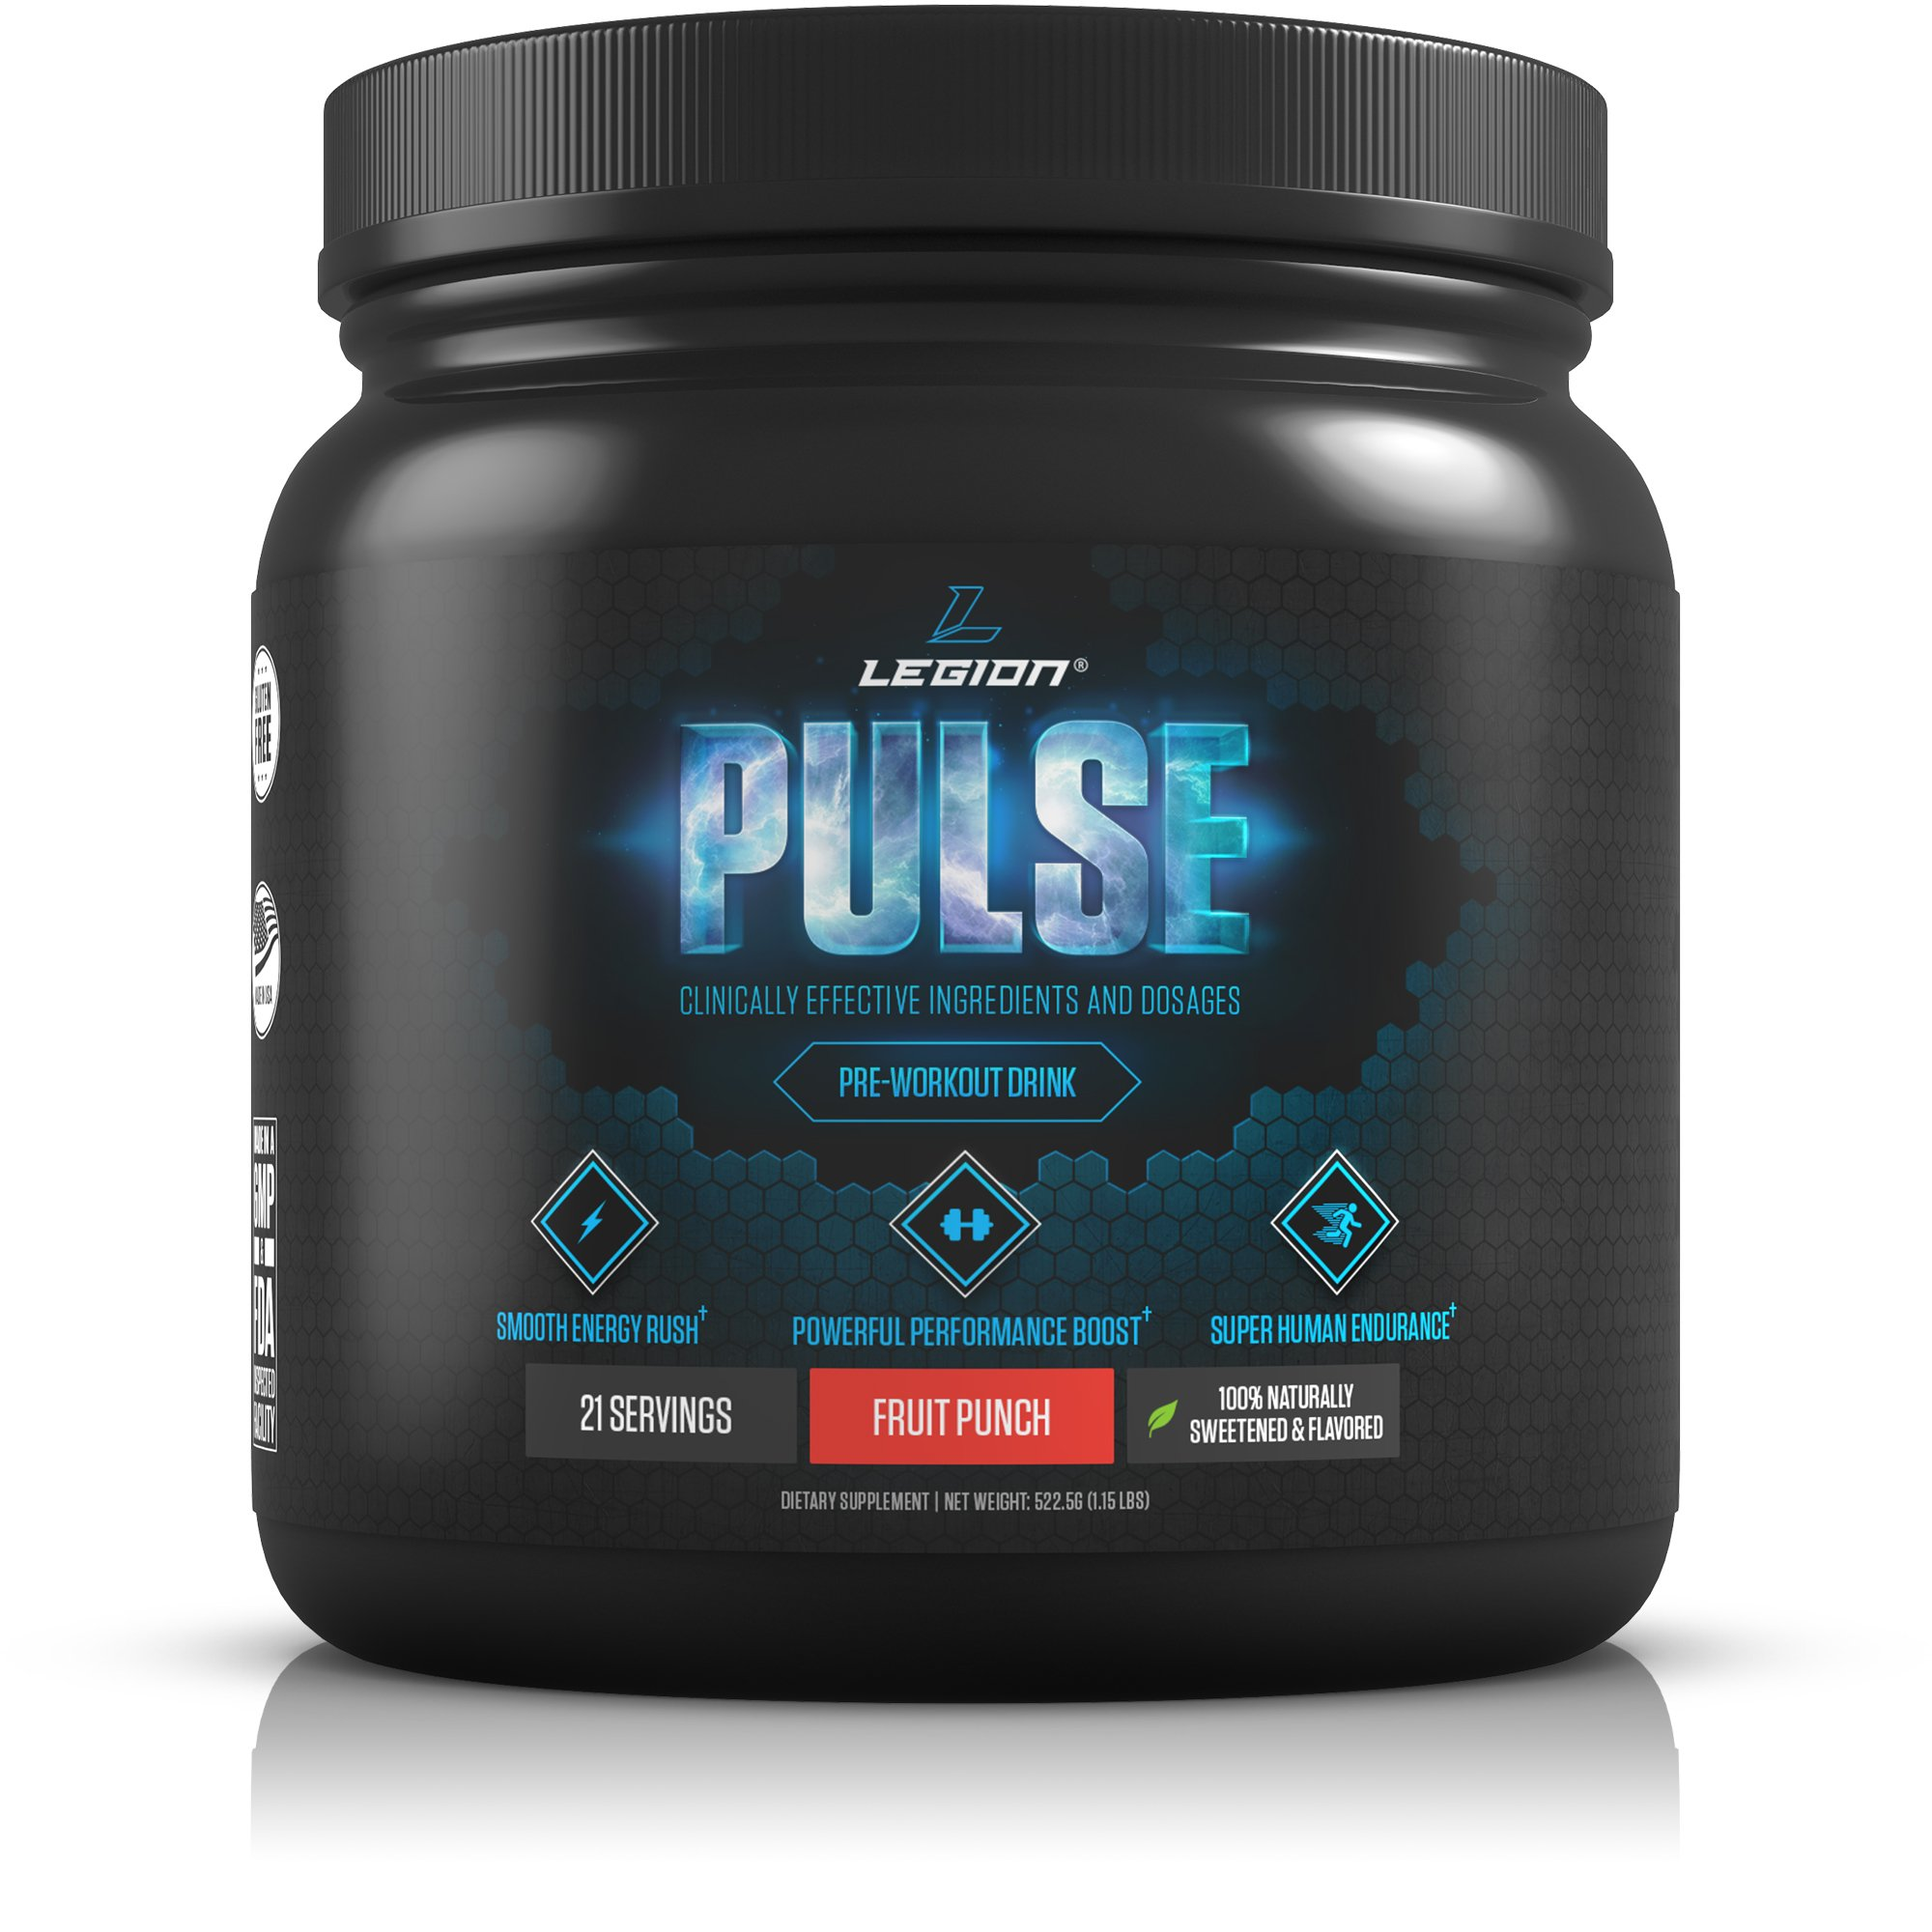 Legion Pulse Pre Workout Supplement - All Natural Nitric Oxide Preworkout Drink to Boost Energy & Endurance. Creatine Free, Naturally Sweetened & Flavored, Safe & Healthy. Fruit Punch, 21 Servings by Legion Athletics